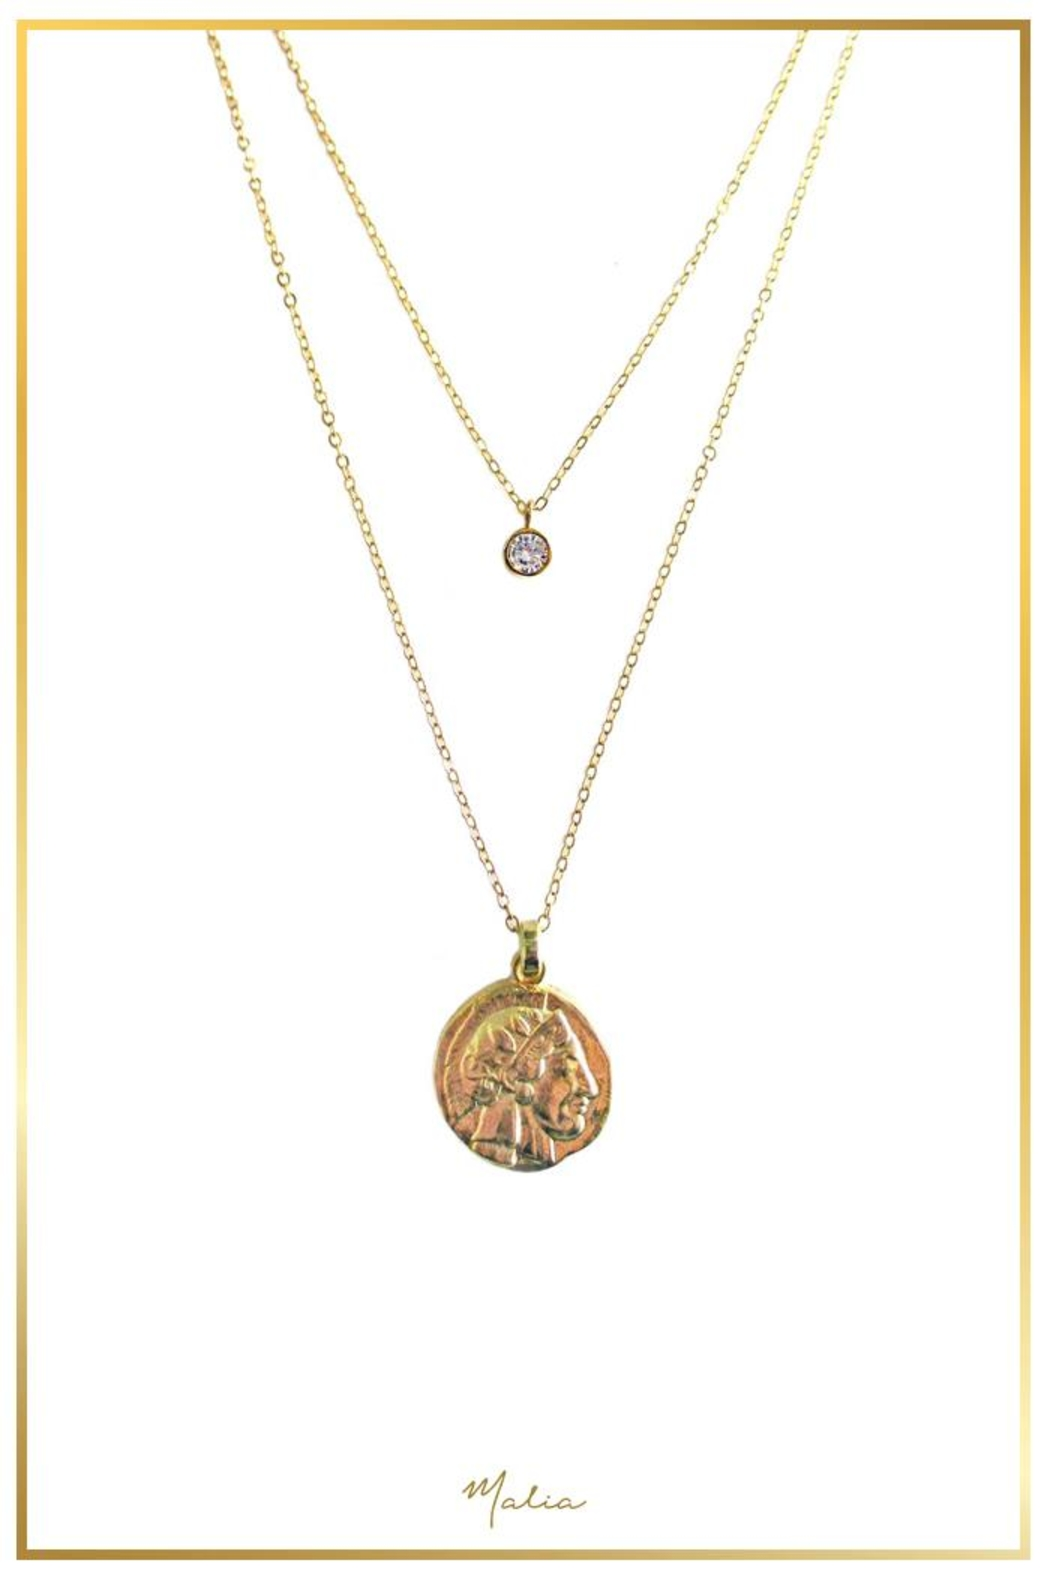 Malia Jewelry 2-Pack Golden Necklaces - Main Image